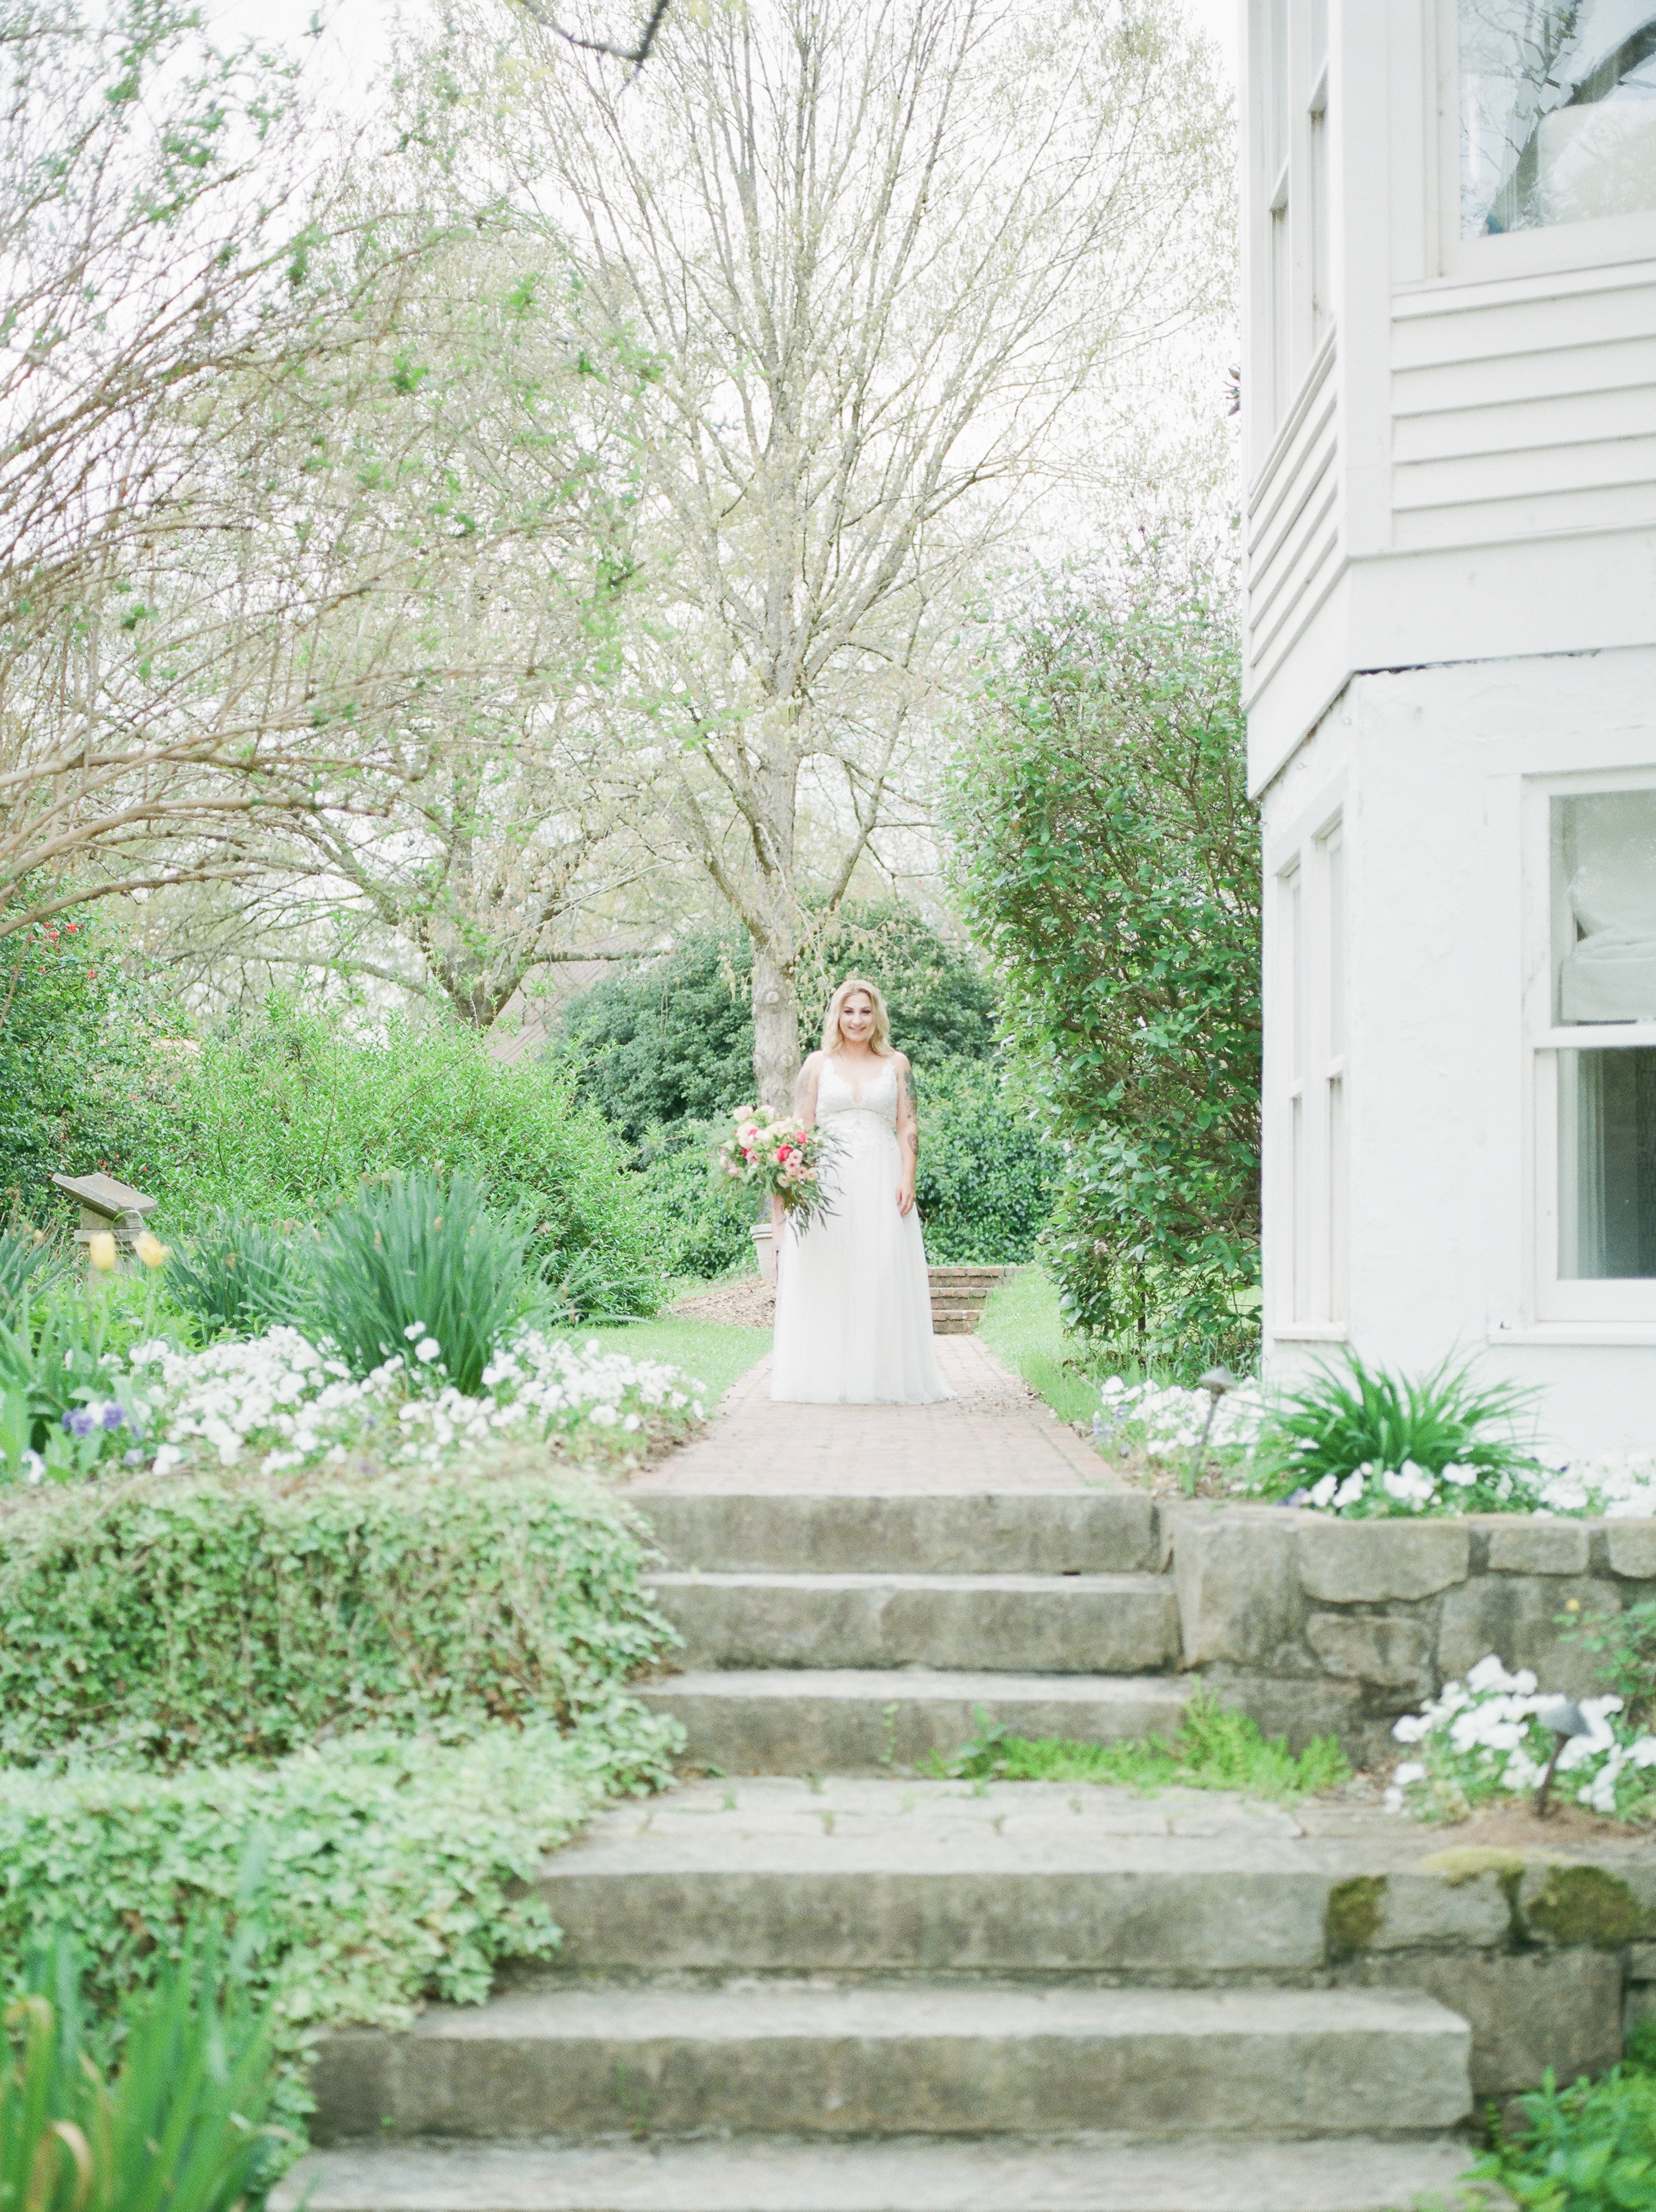 k+d film darian reilly photography-6.jpg